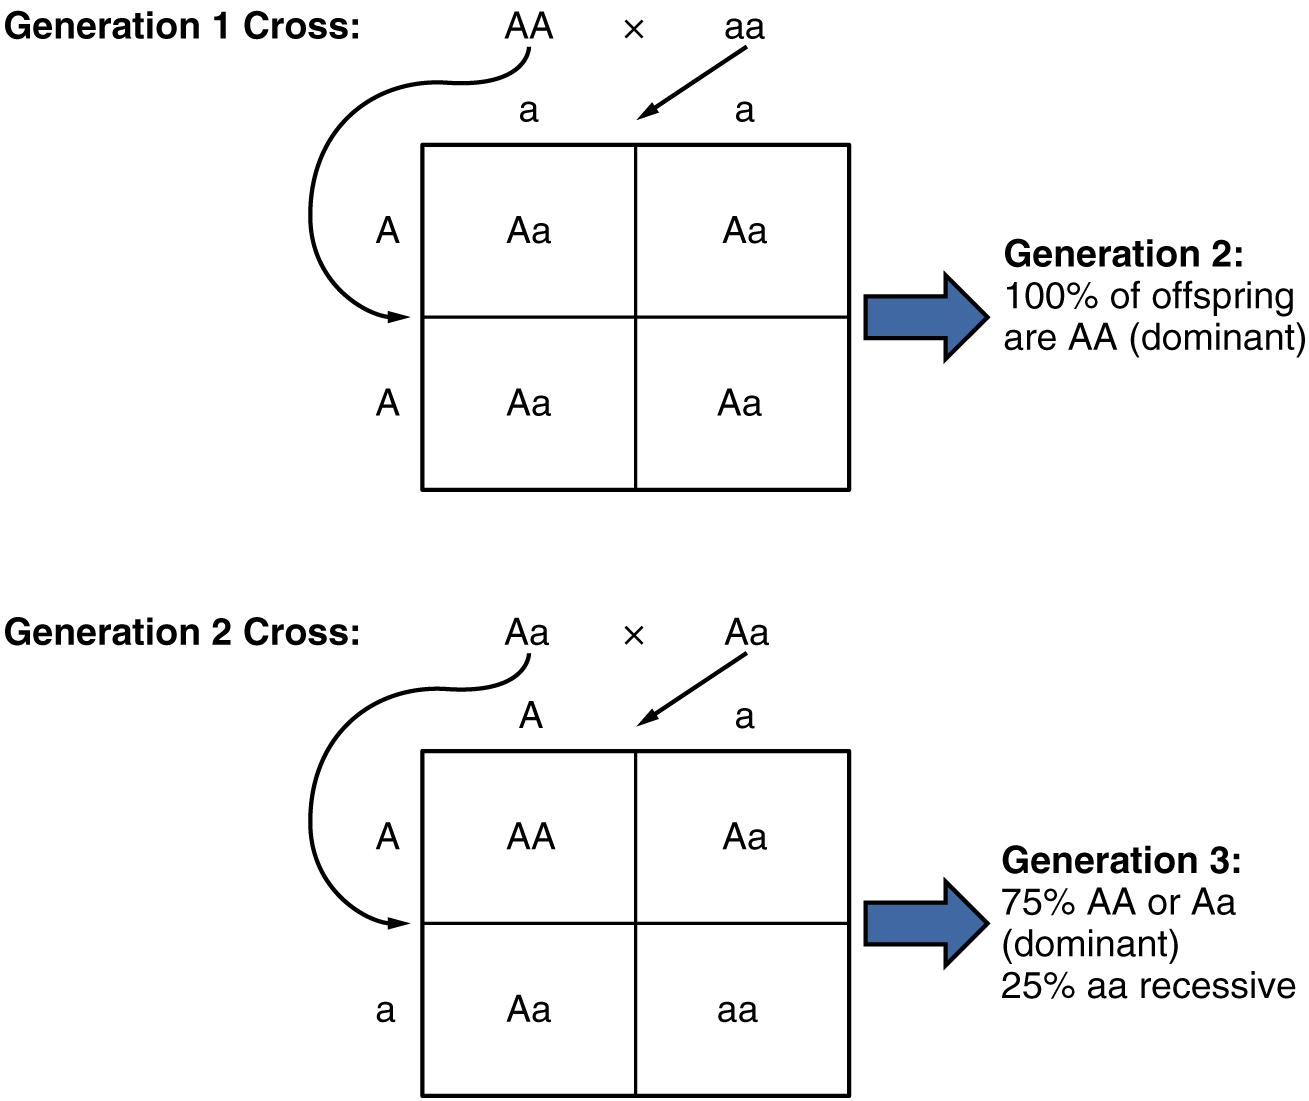 This diagram shows the genetics experiment conducted by Mendel. The top panel shows the offspring from first generation cross and the bottom panel shows the offspring from the second generation cross.